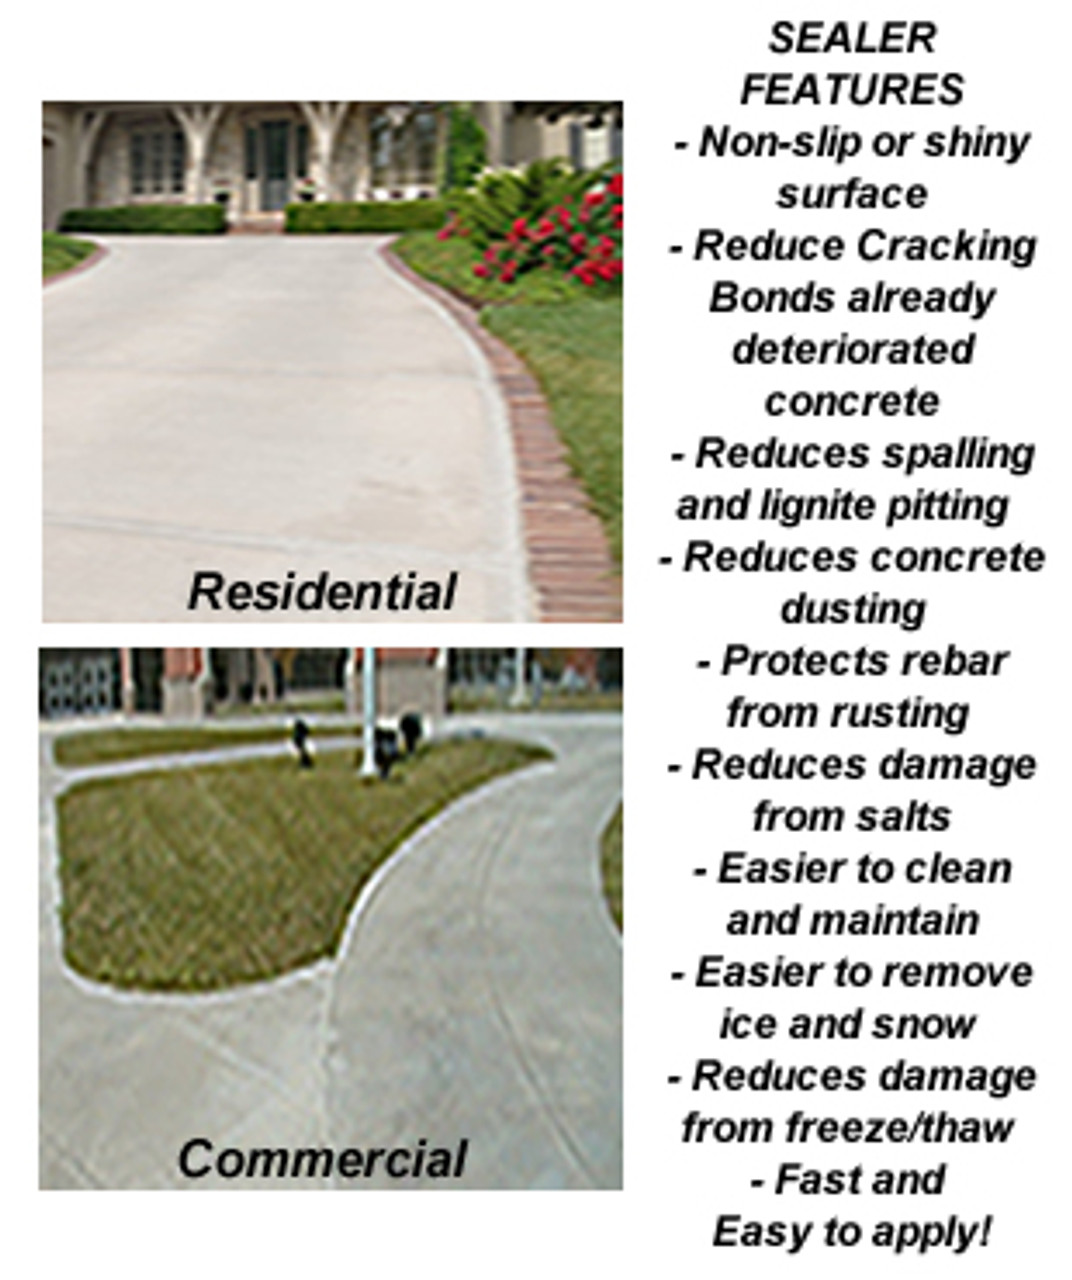 SealGreen Concrete Sealer for Residential and Commercial Applications